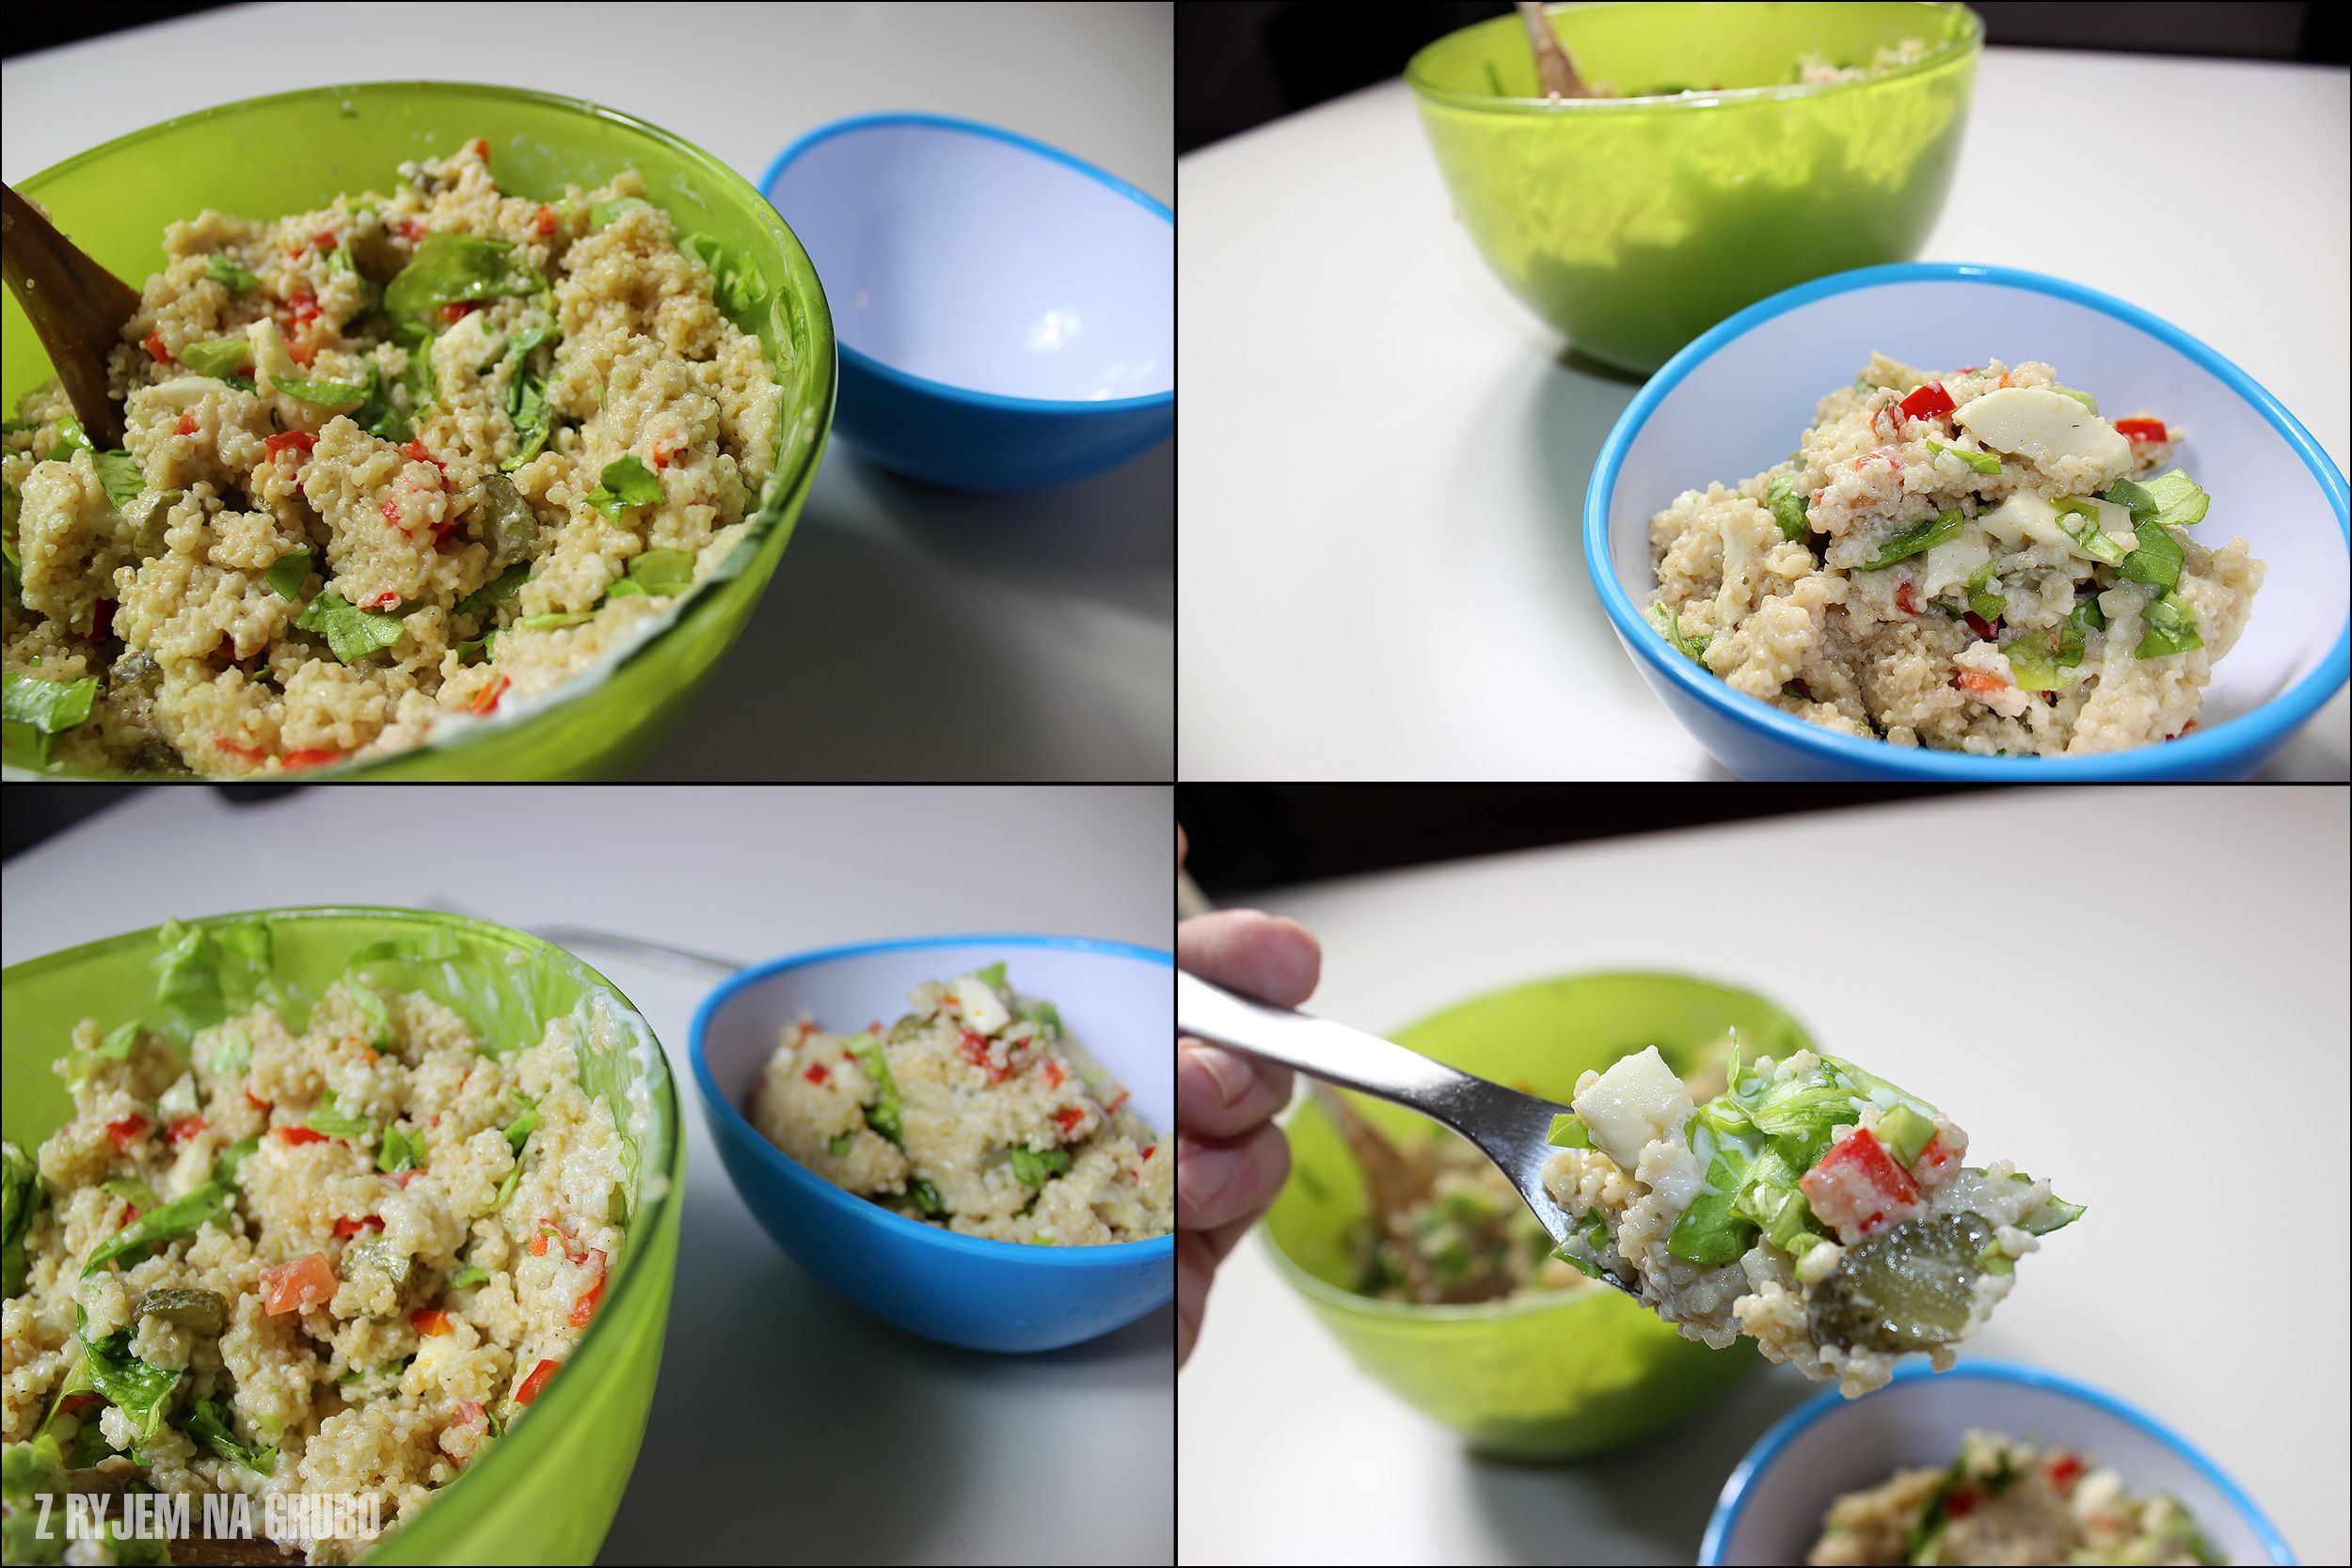 Decided to make a Little cous-cous salad snack... went overboard as usuall... [OC] #TTDD#TheThingsDadsDo